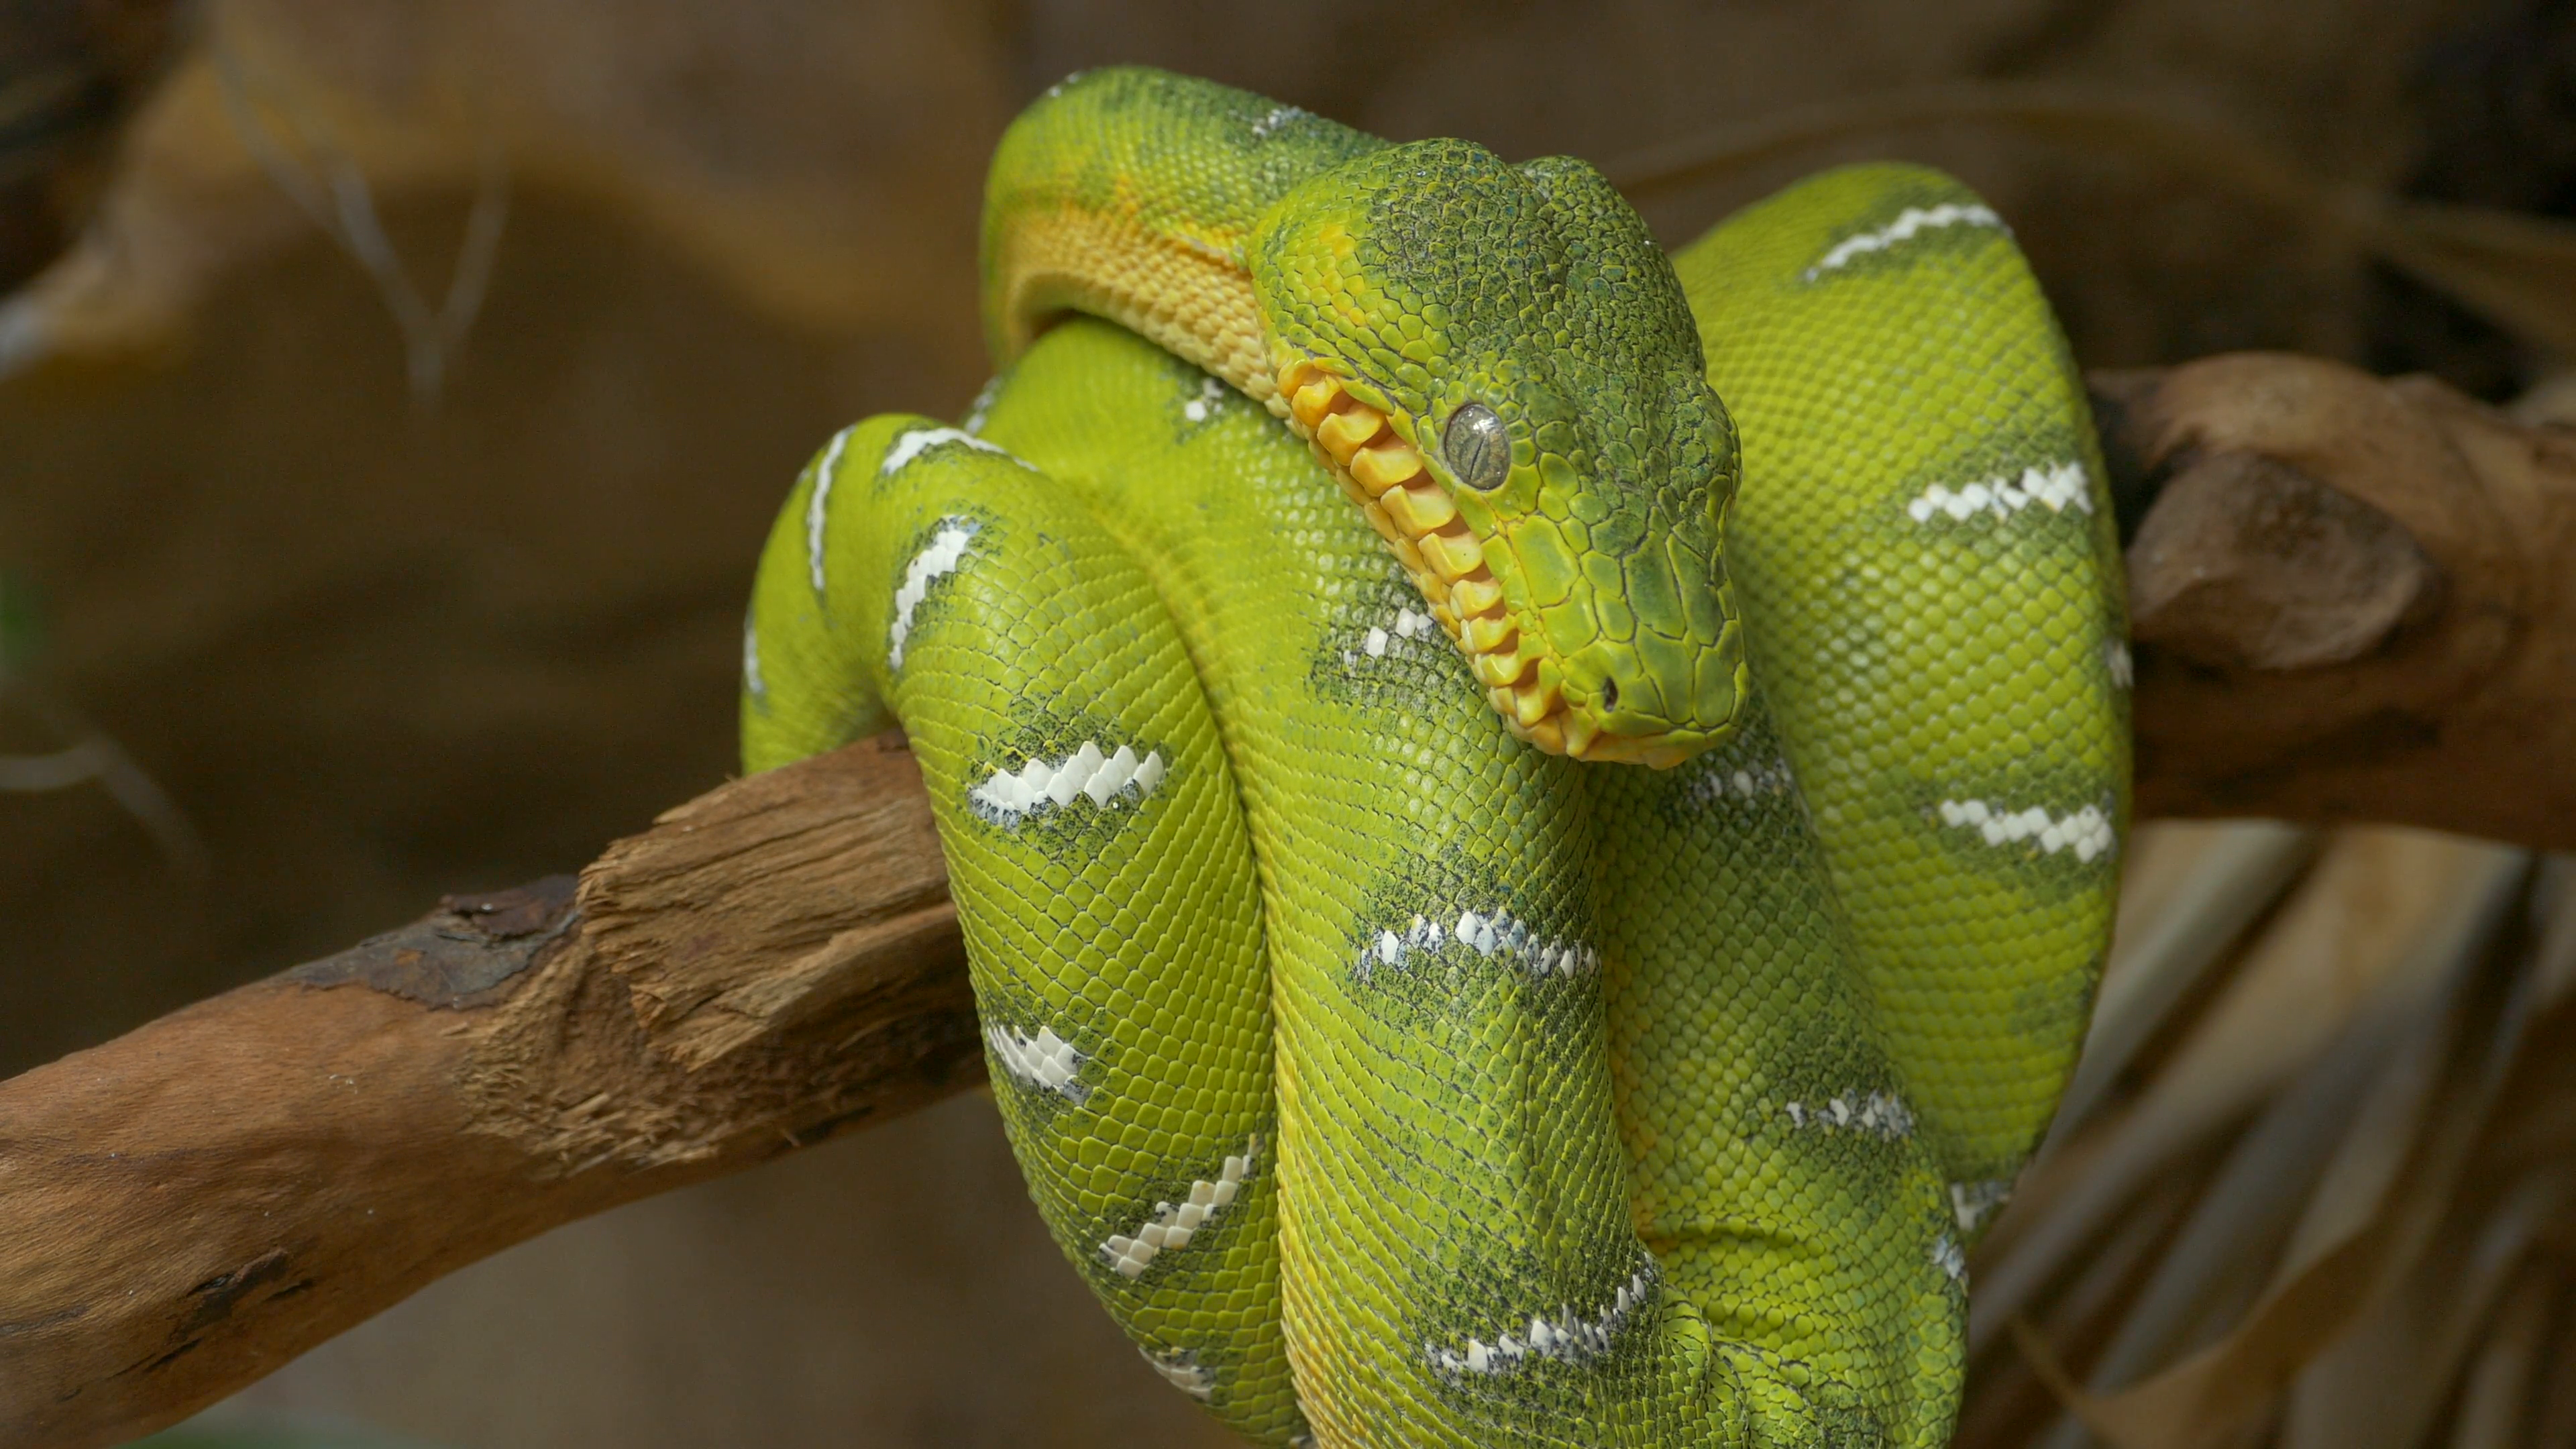 emerald-tree-boa-corallus-caninus-coiled-around-a-branch_vjvwazif__ ...